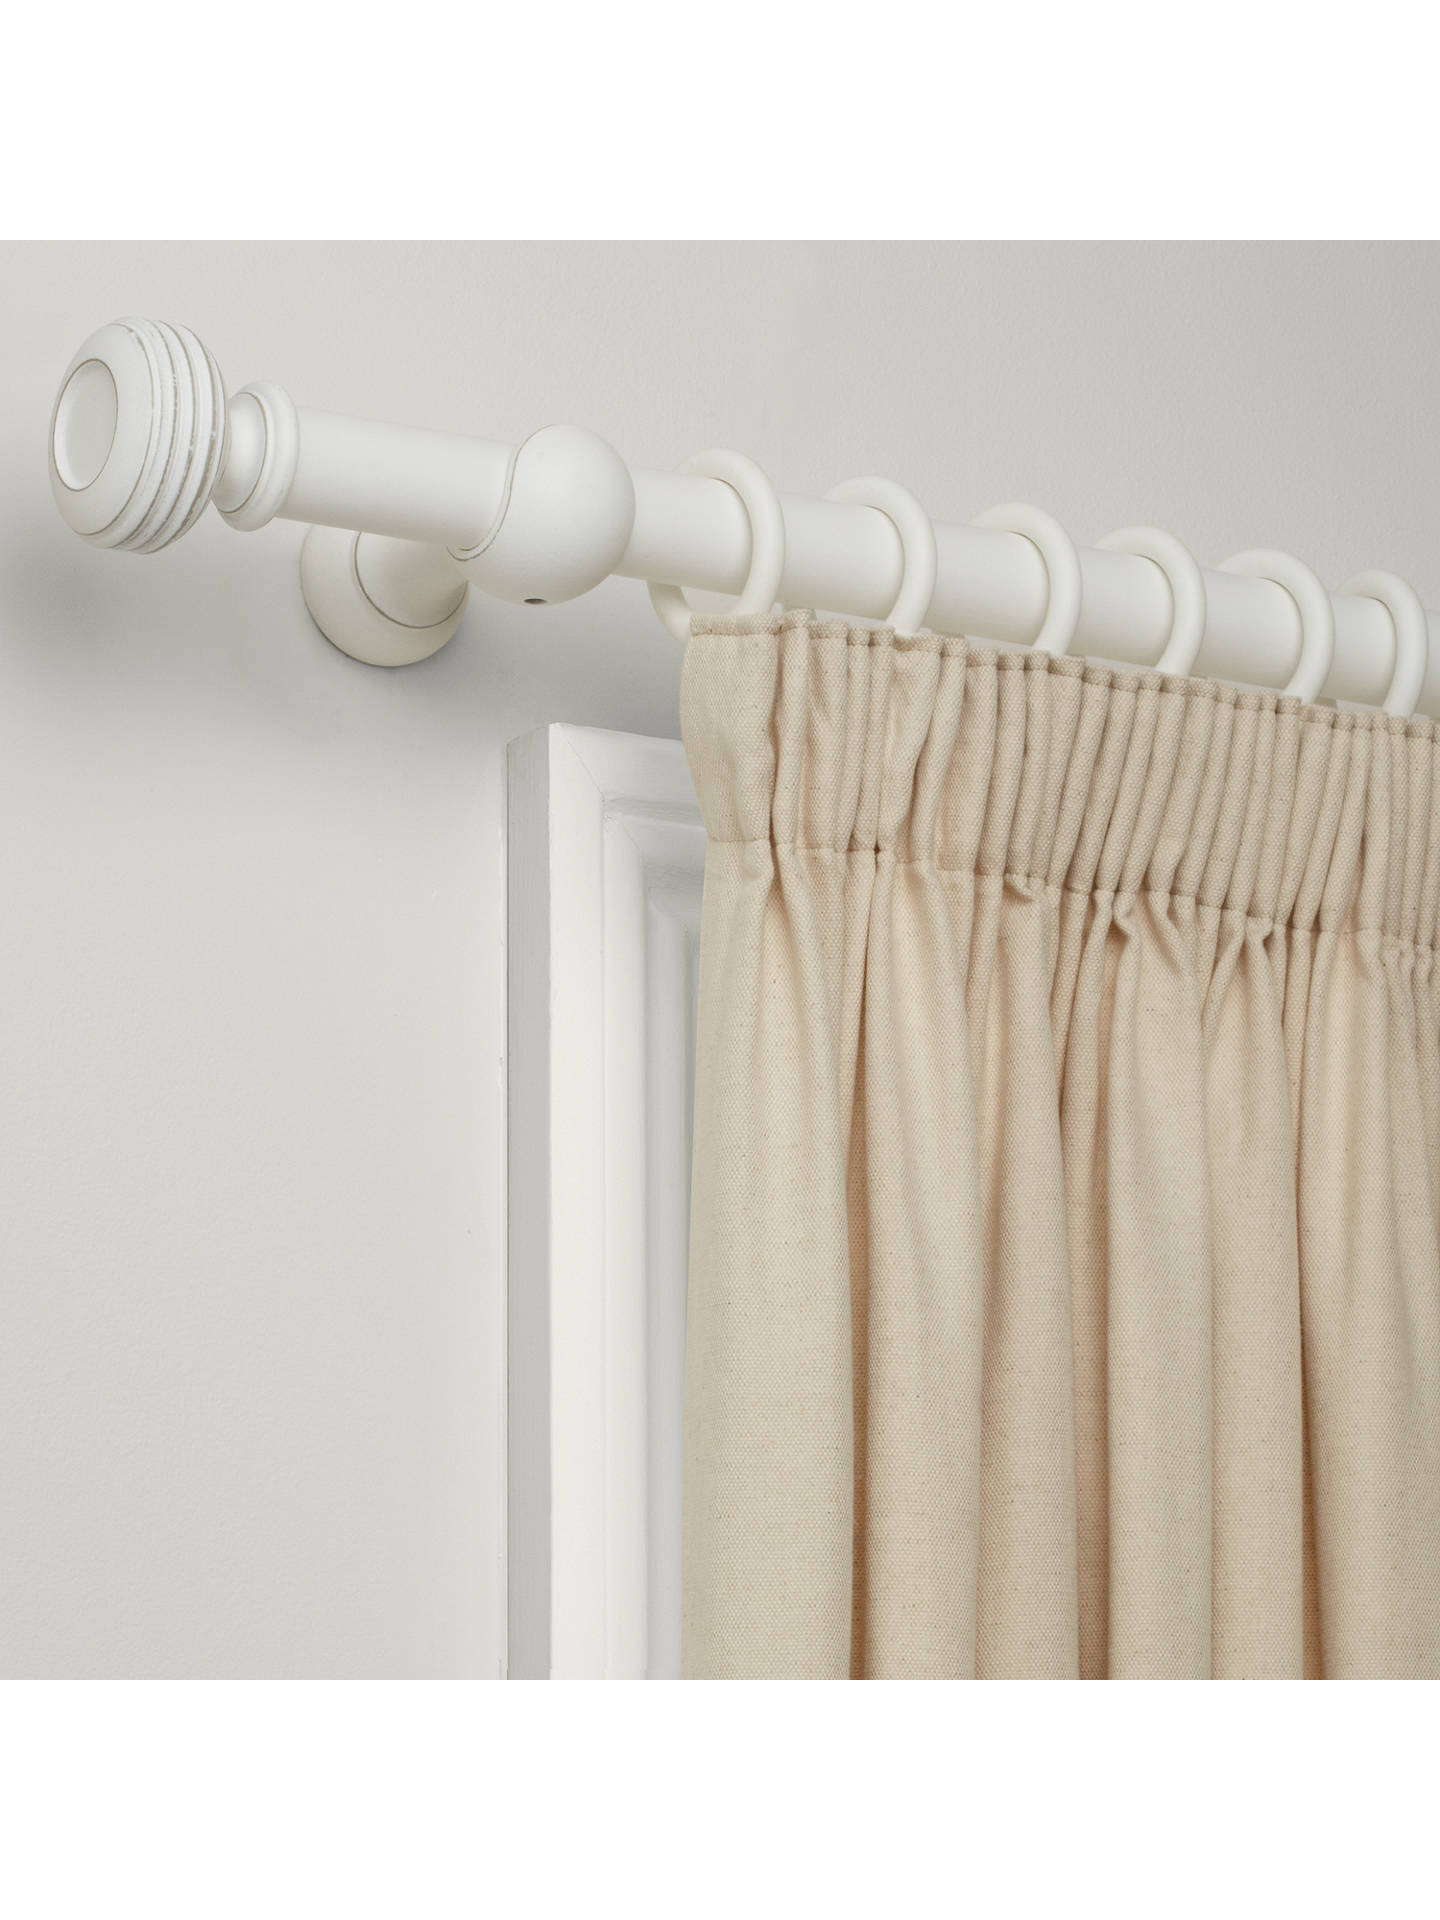 Buy John Lewis & Partners Distressed Curtain Pole Kit, White, Dia.35mm x L150cm Online at johnlewis.com